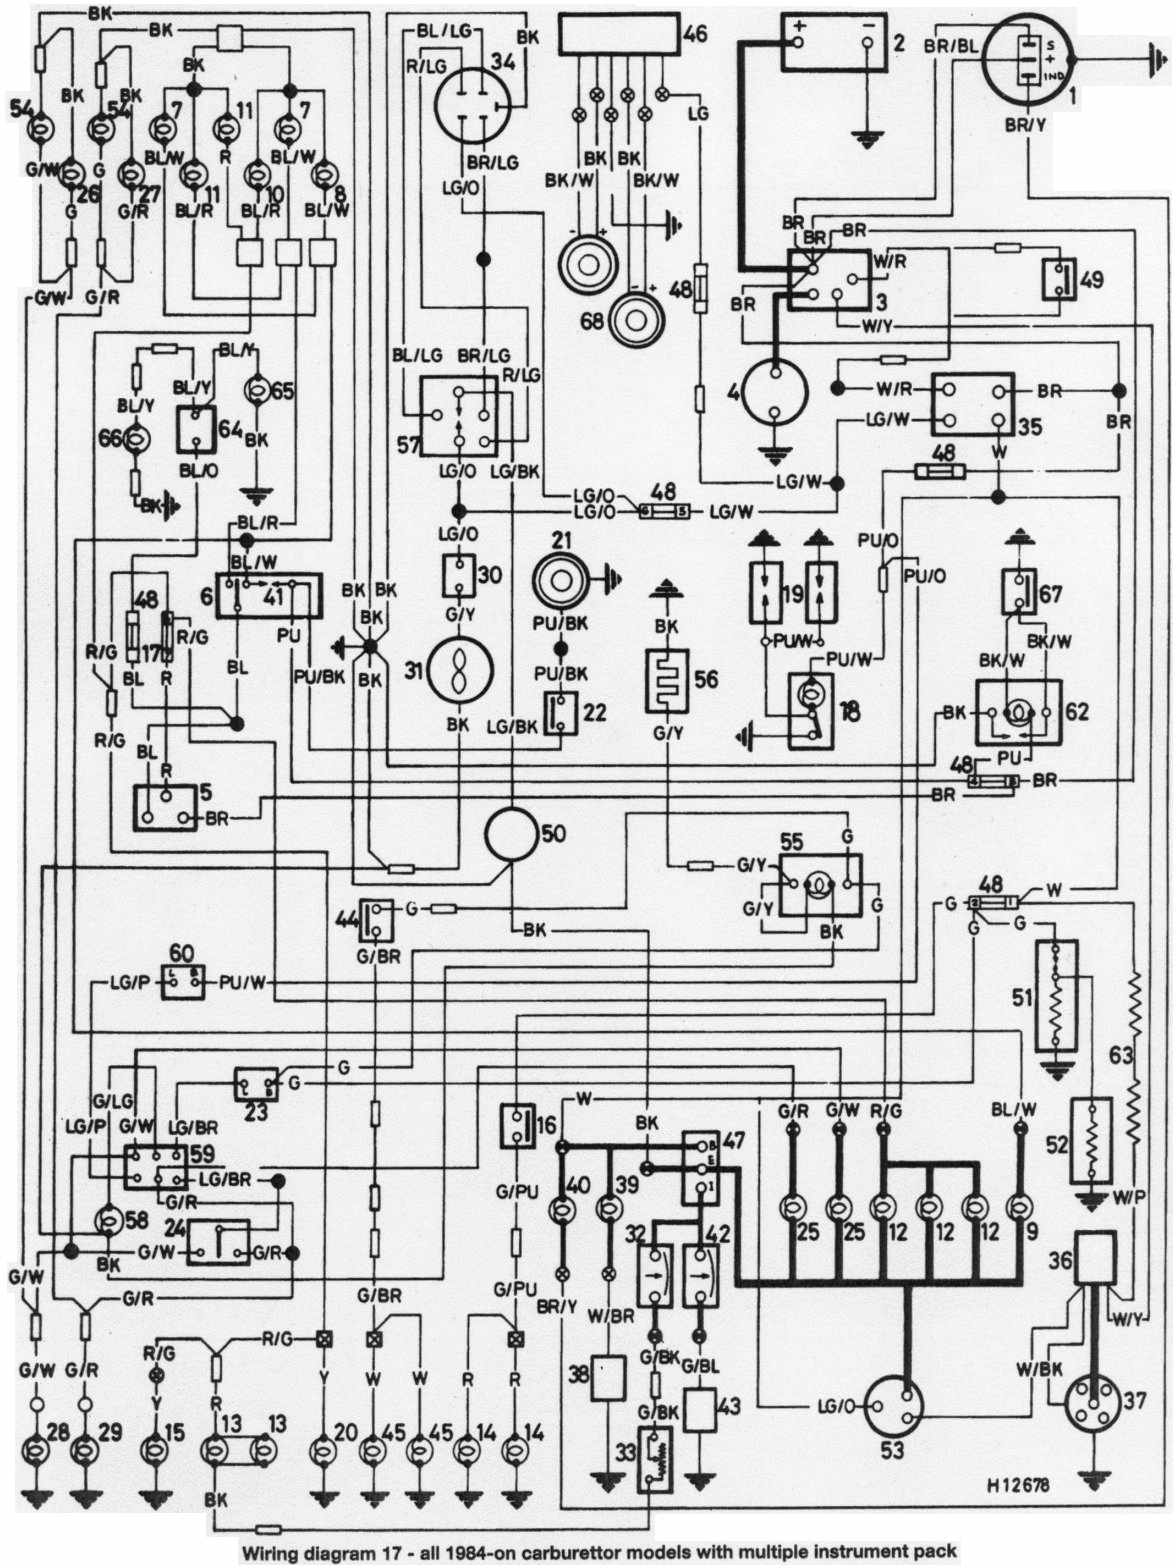 wiring diagram of 1984 onwards all mini series with multiple instrument pack morris minor wiring diagram dolgular com  at bakdesigns.co